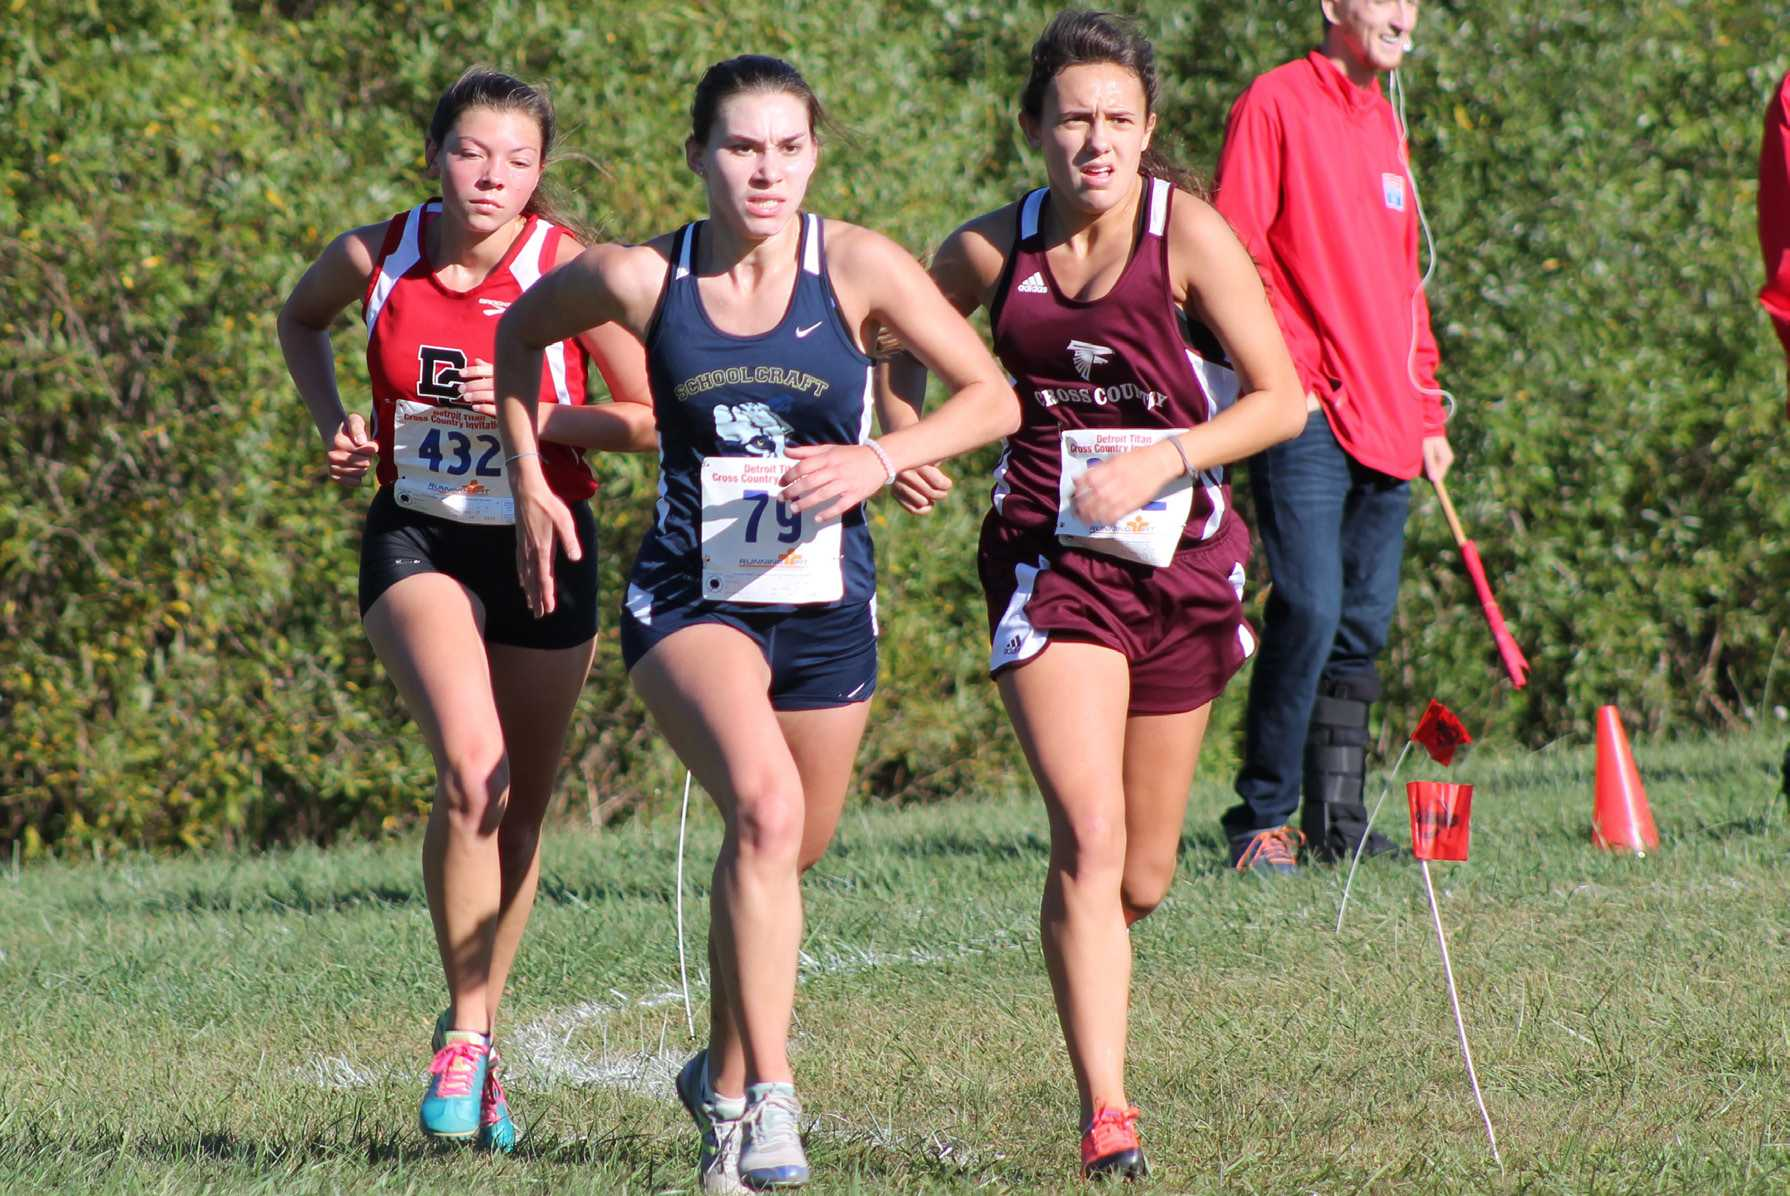 Audrey Baetz leads the pack and finishes the Titan Invitational in 22:07 (7:08 per mile pace).